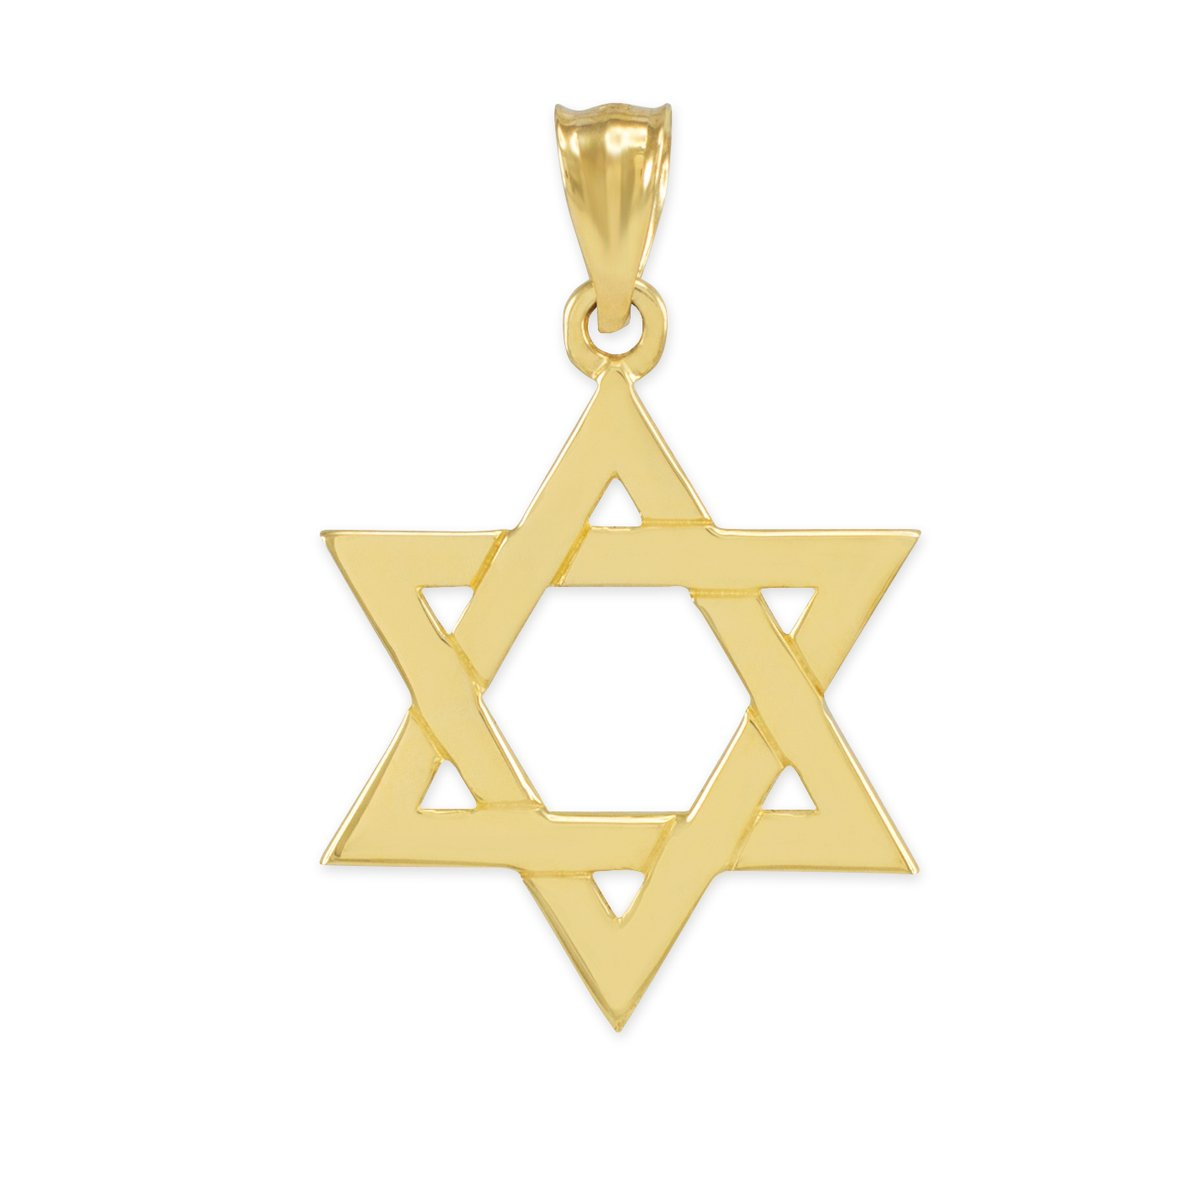 Solid 14k Yellow Gold Traditional Jewish Star of David Charm Pendant (27.94 Millimeters)